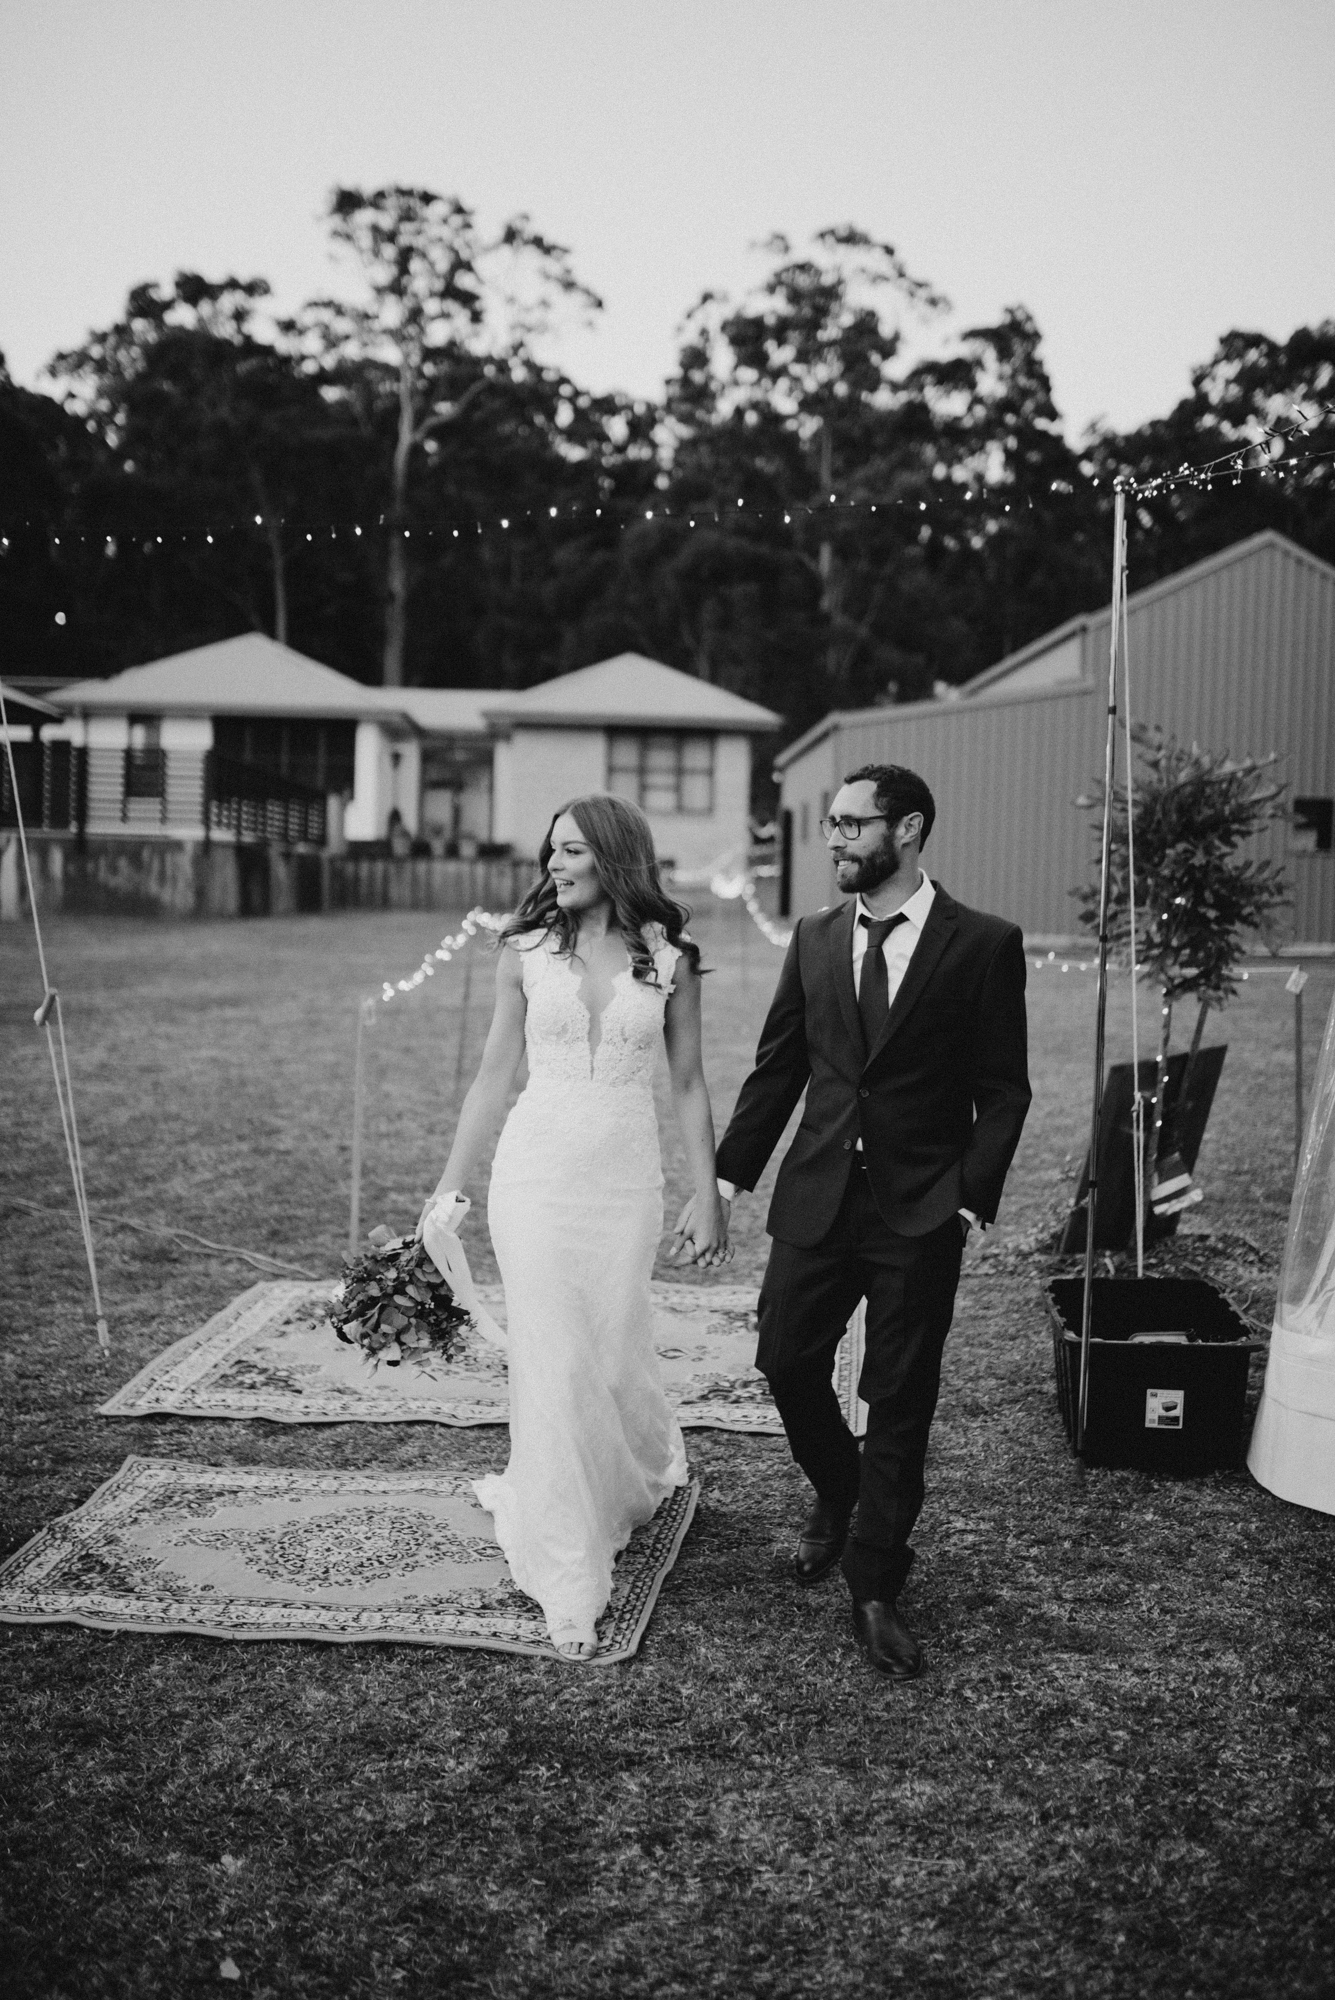 kelsie+chris-newcastle-44.jpg